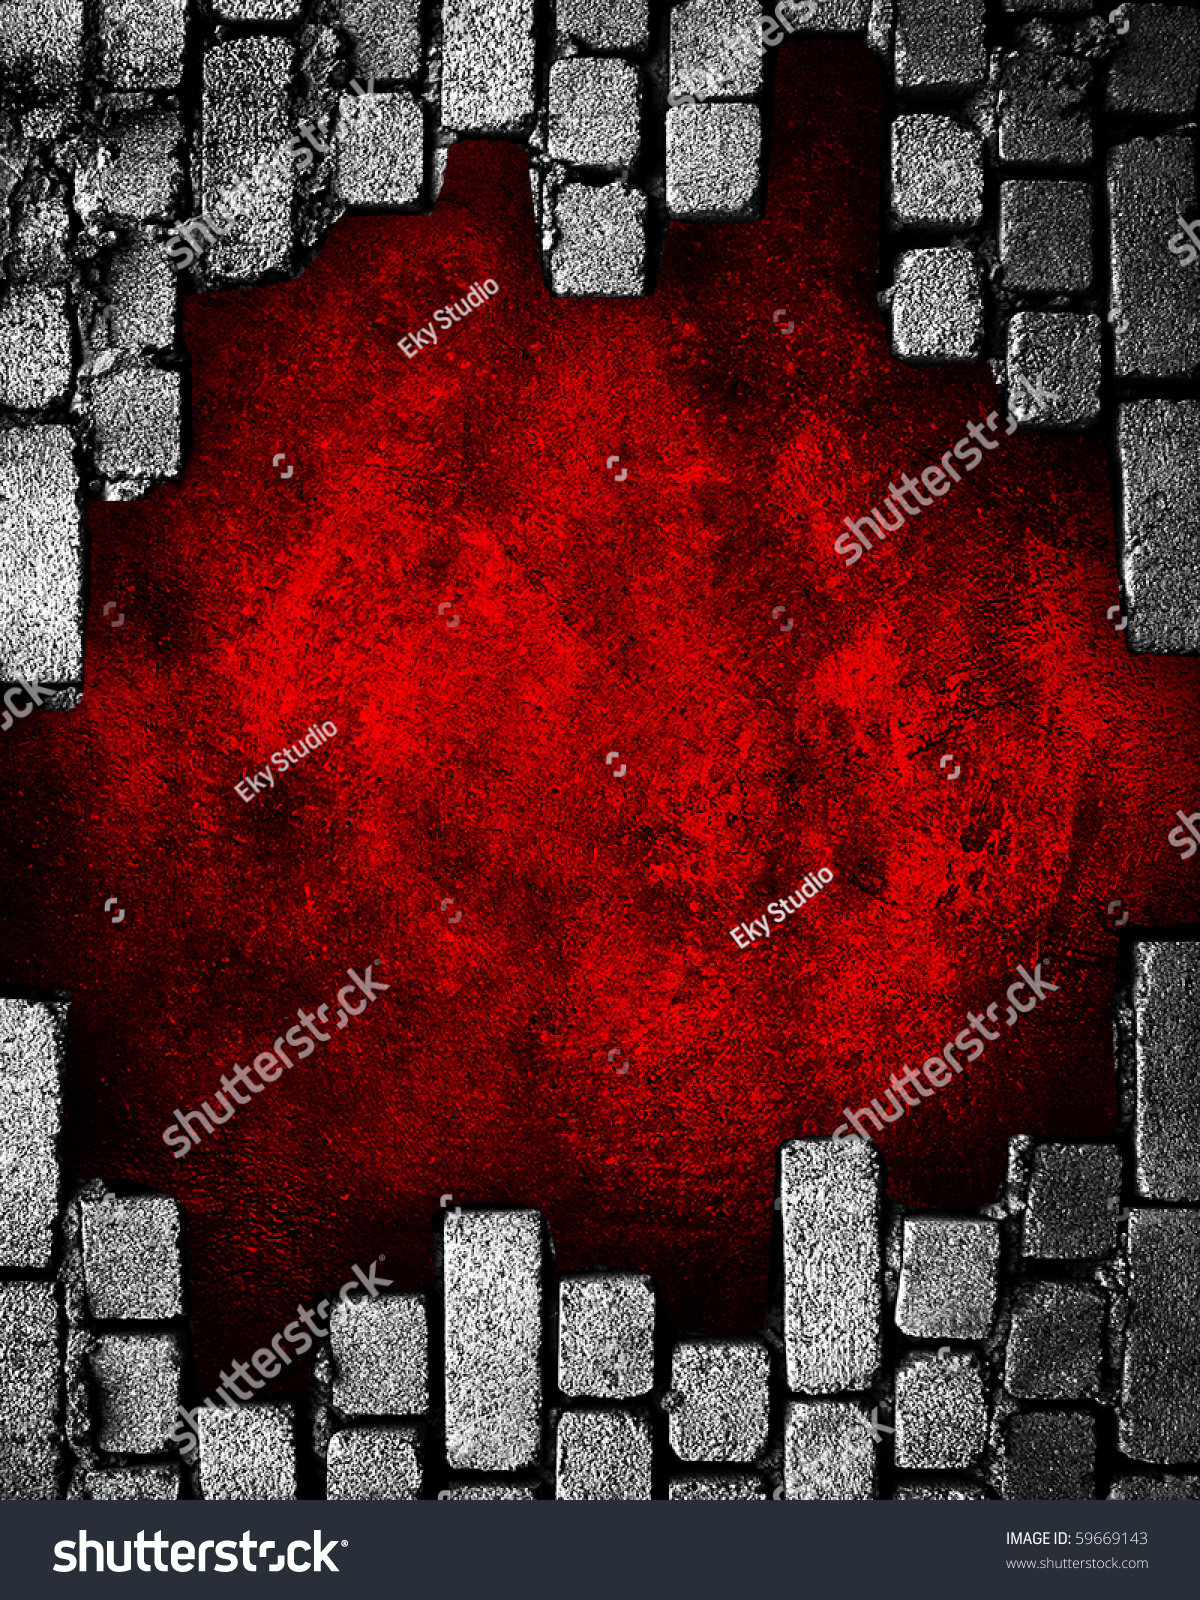 how to cut a hole in a brick wall